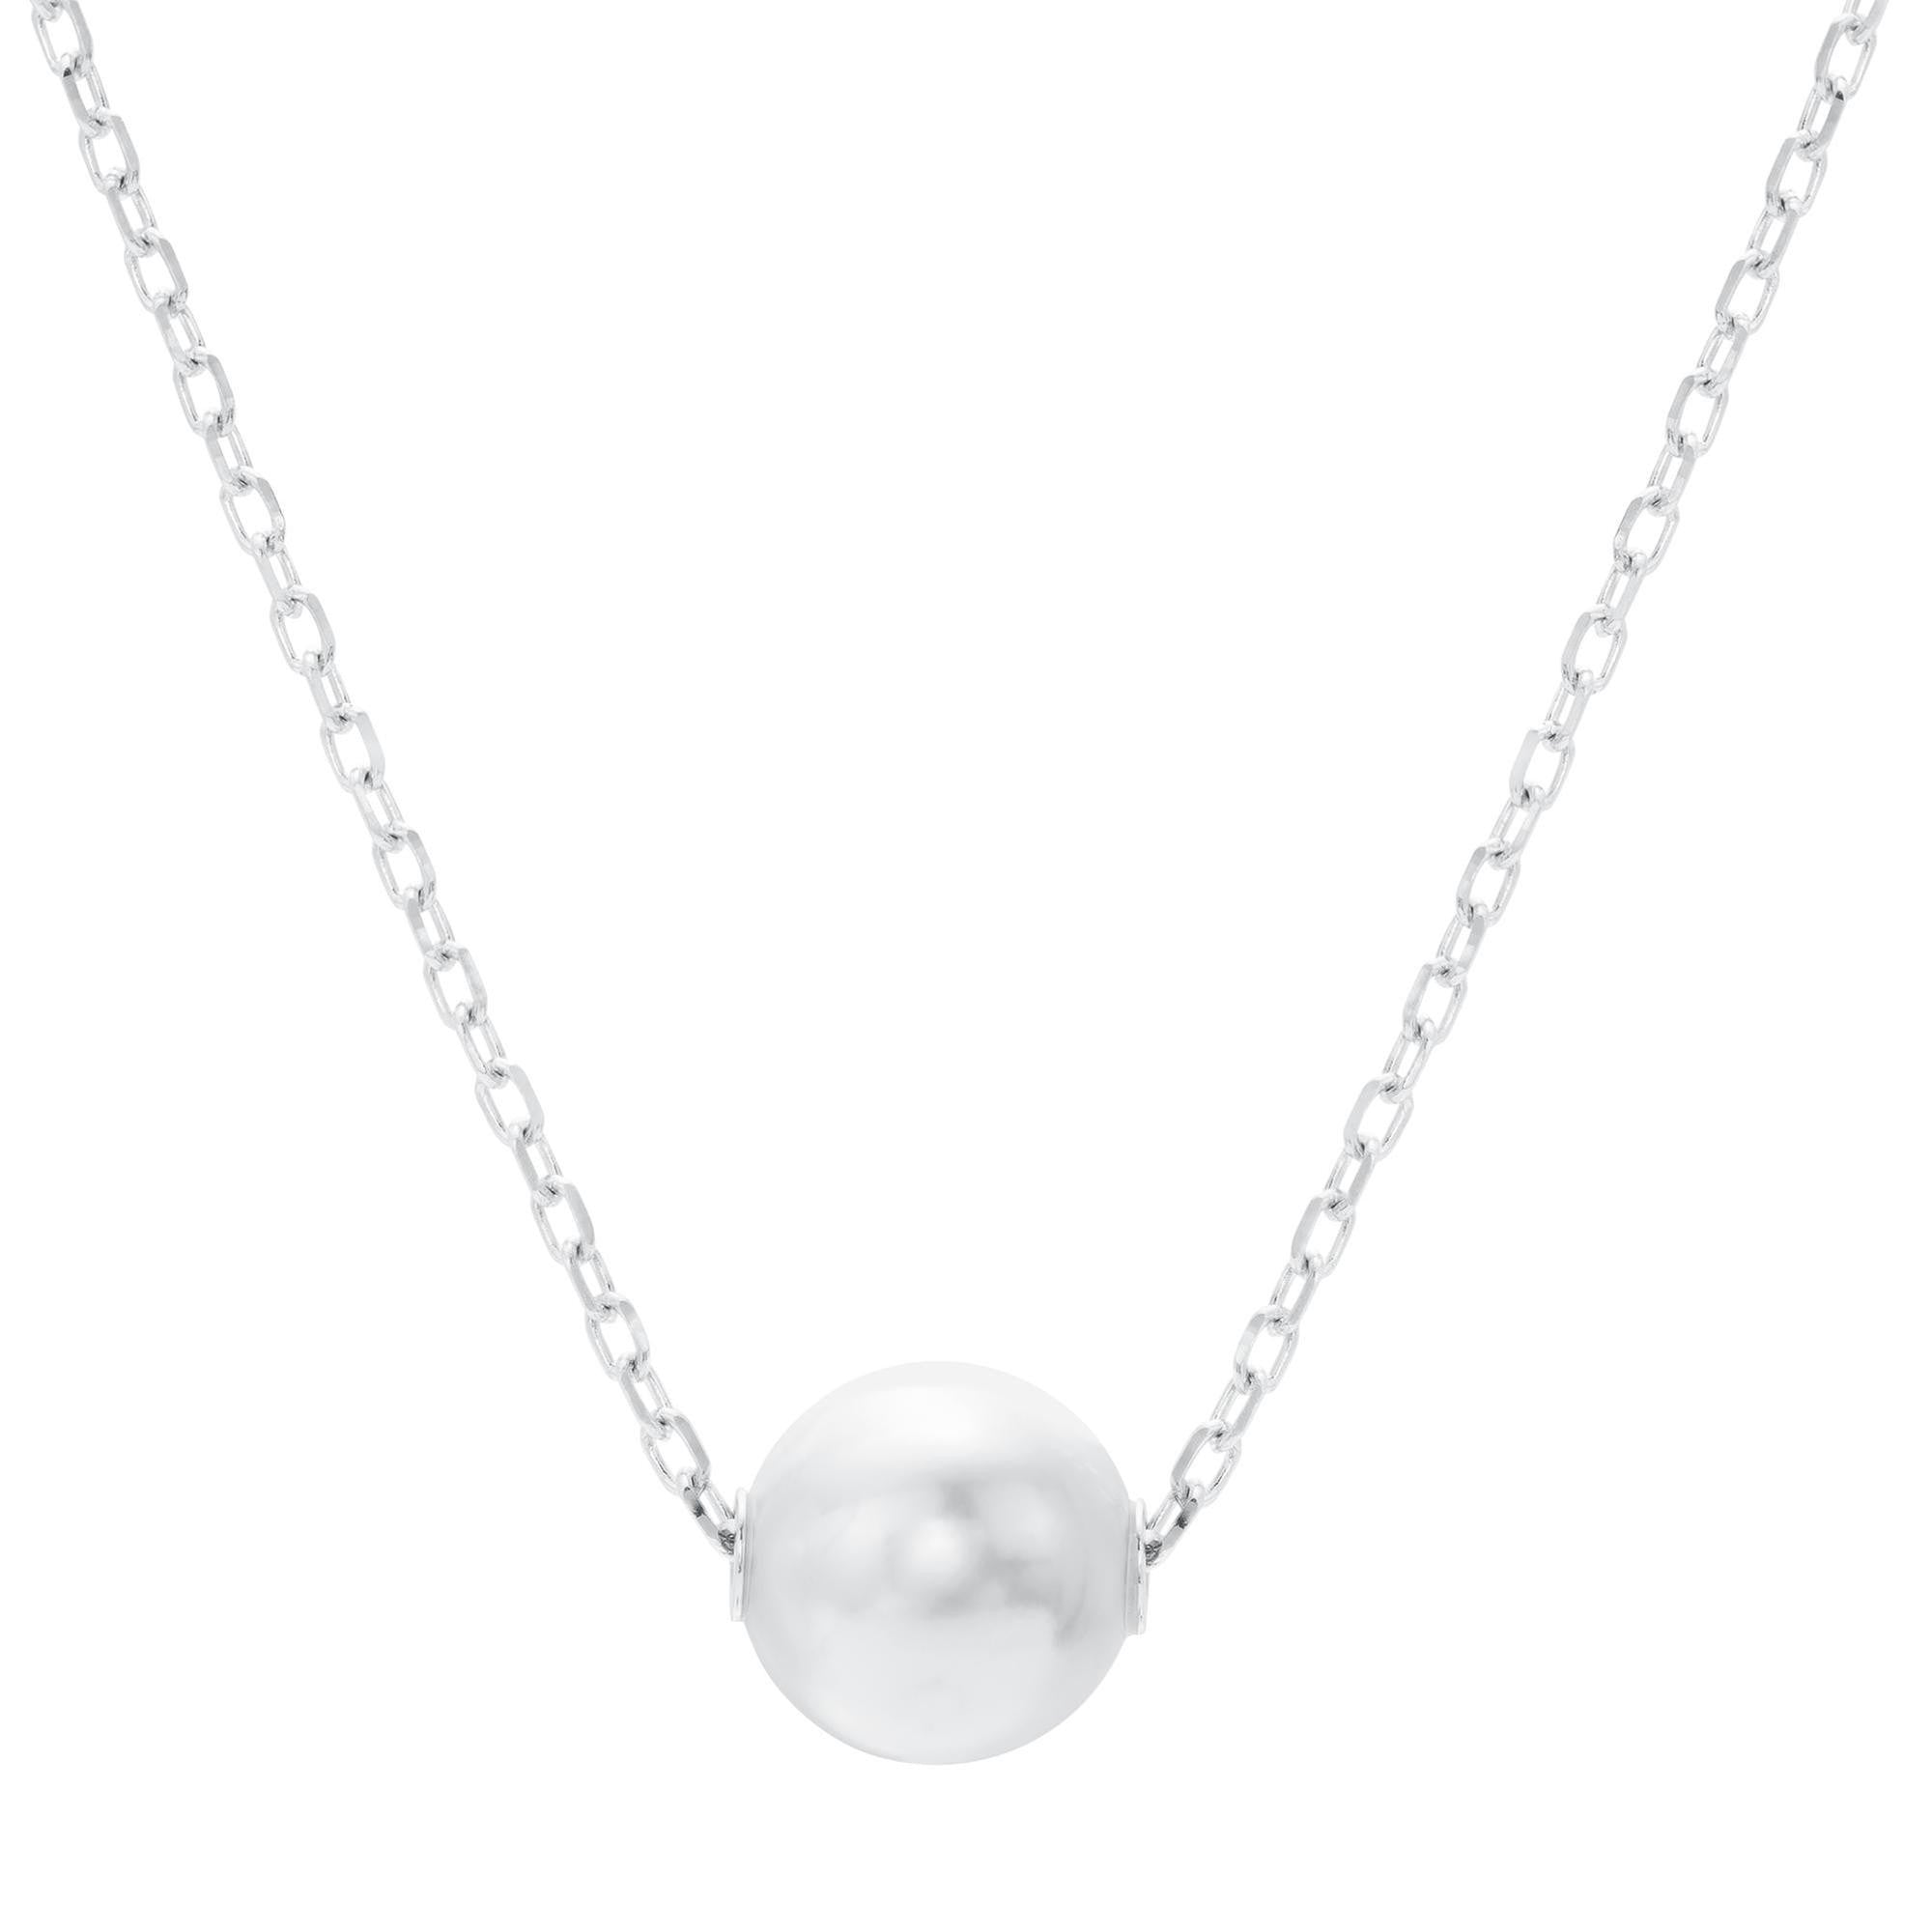 mikimoto necklace caymancode pearl pendant diamond bow and ribbon